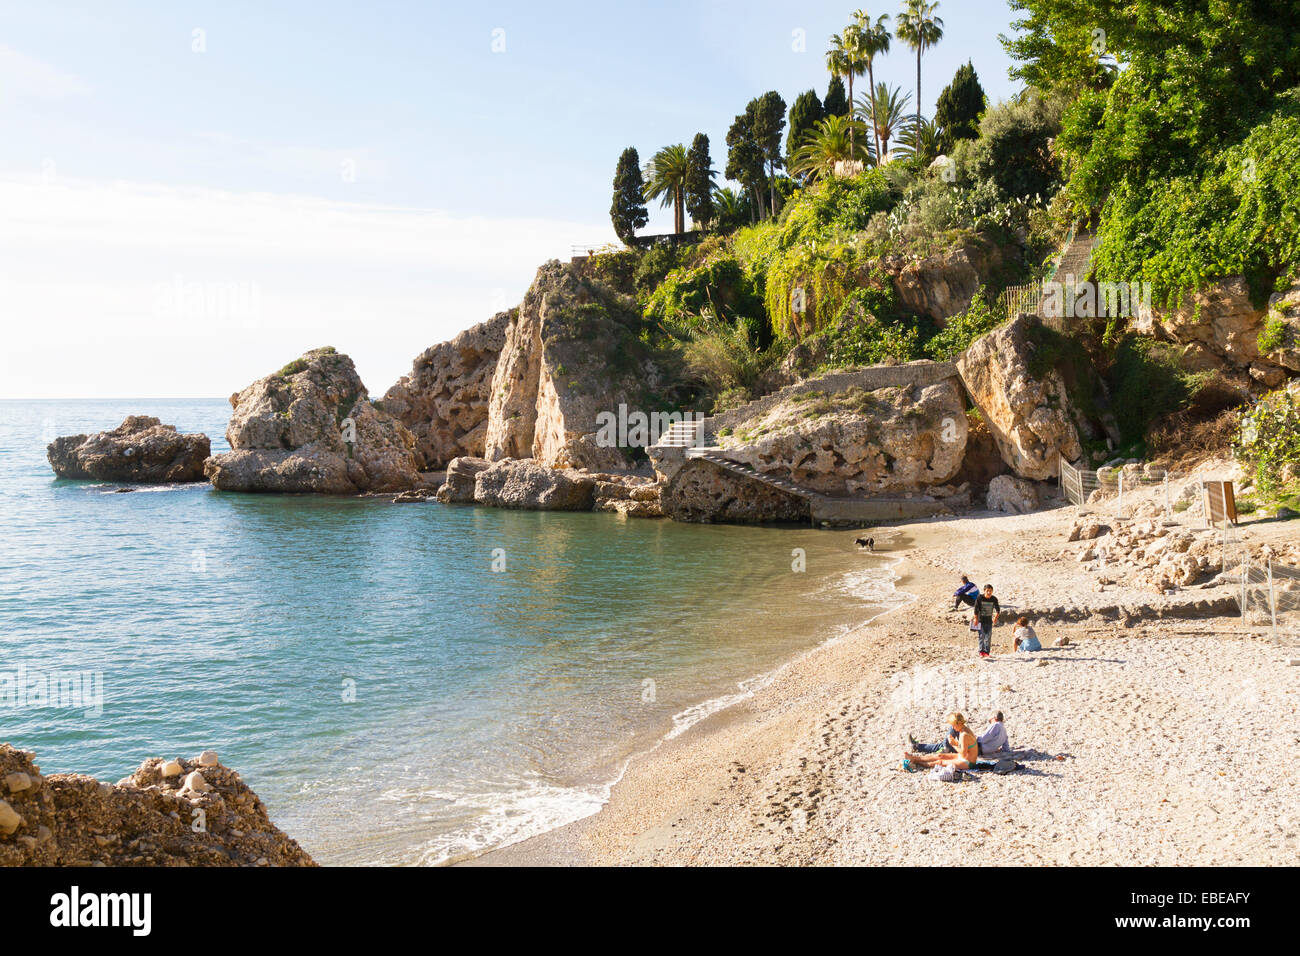 One of the many small sandy coves along the Costa Del Sol in Spain - Stock Image